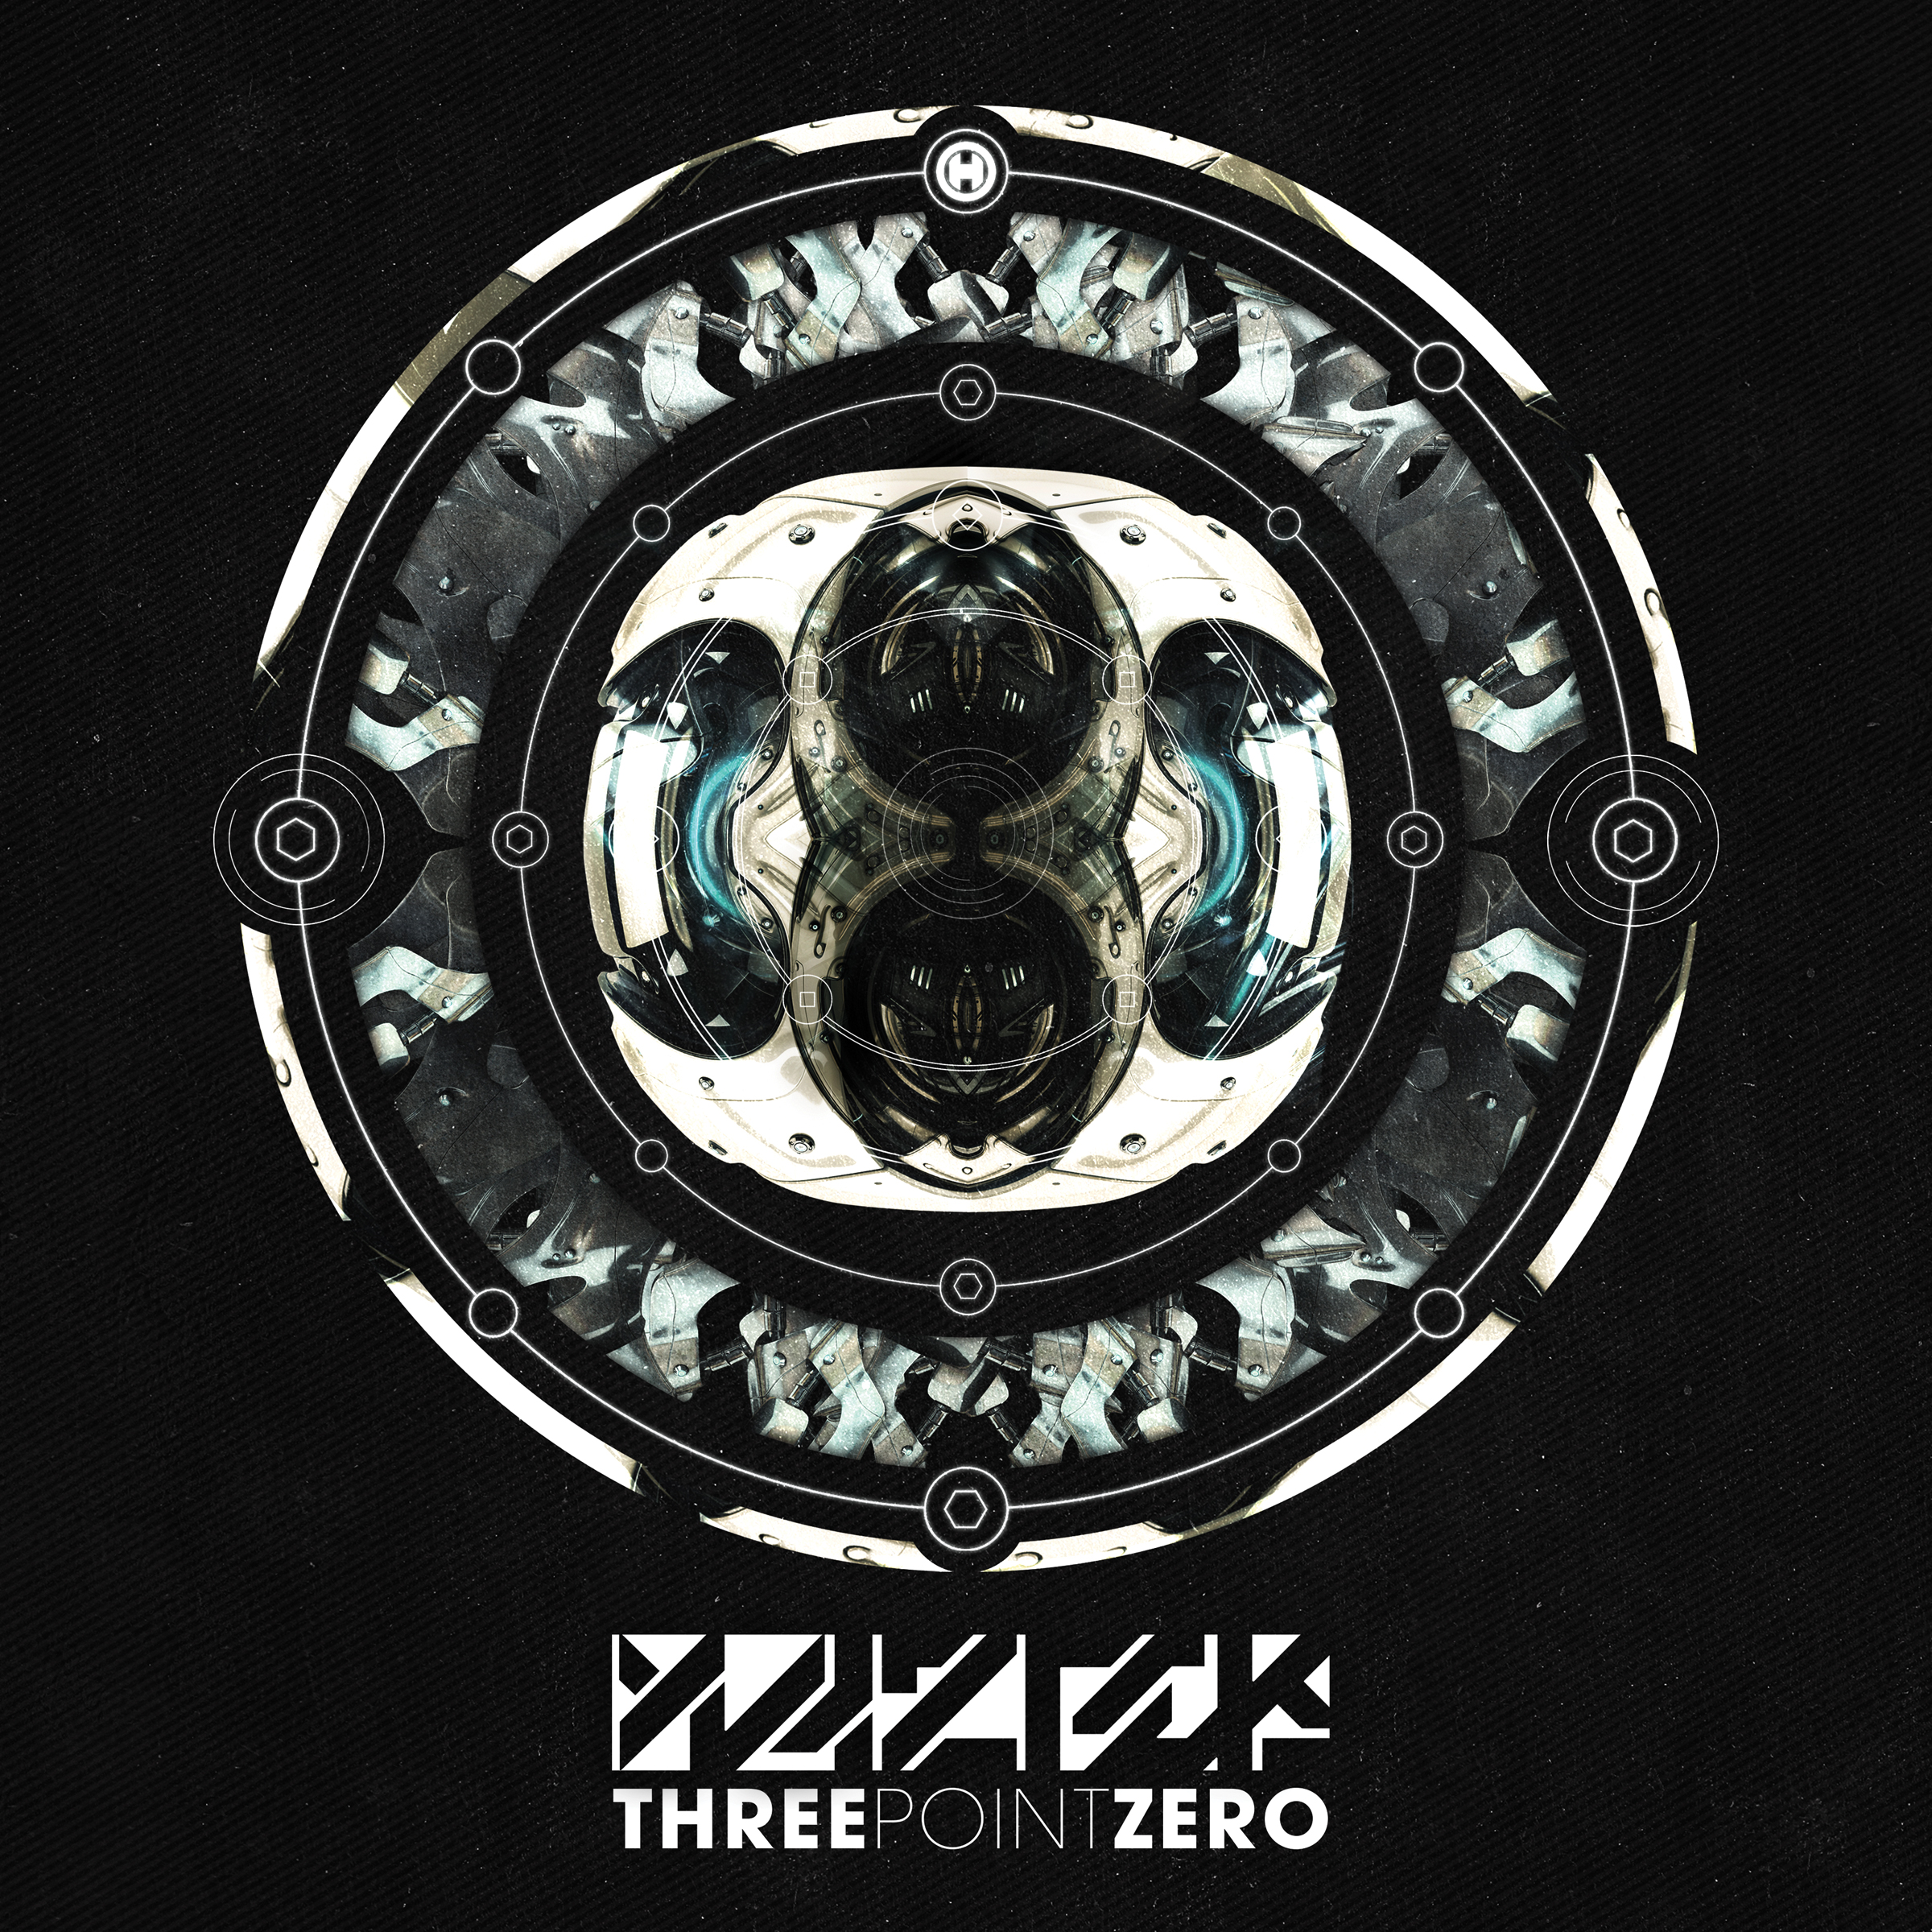 Maztek/THREE POINT ZERO CD